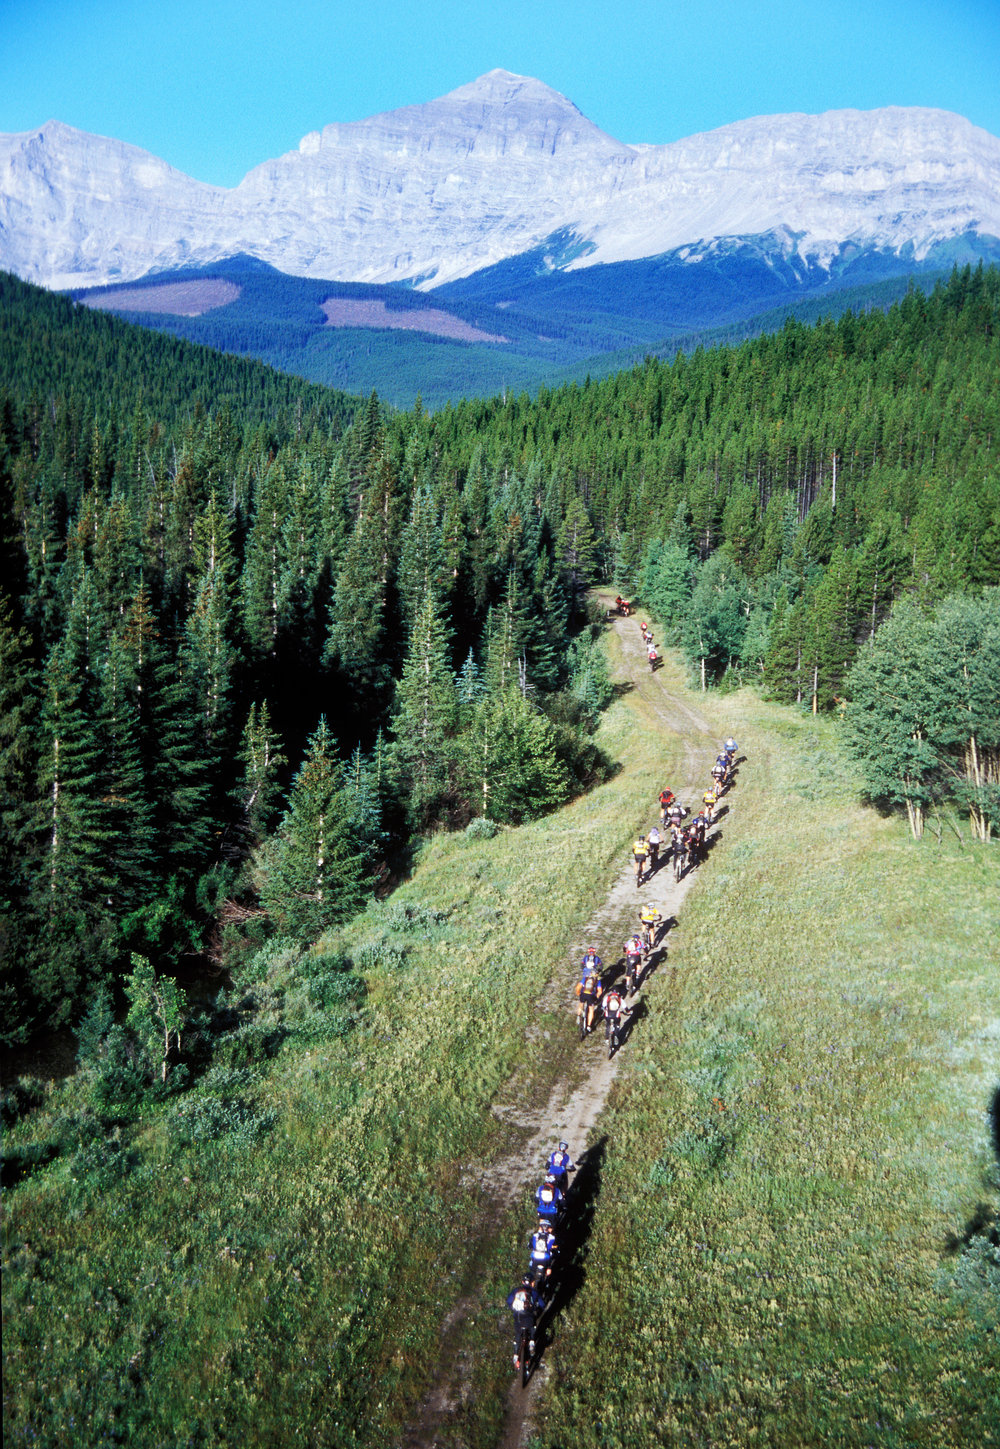 TransRockies Challenge mountain bike stage race, Alberta